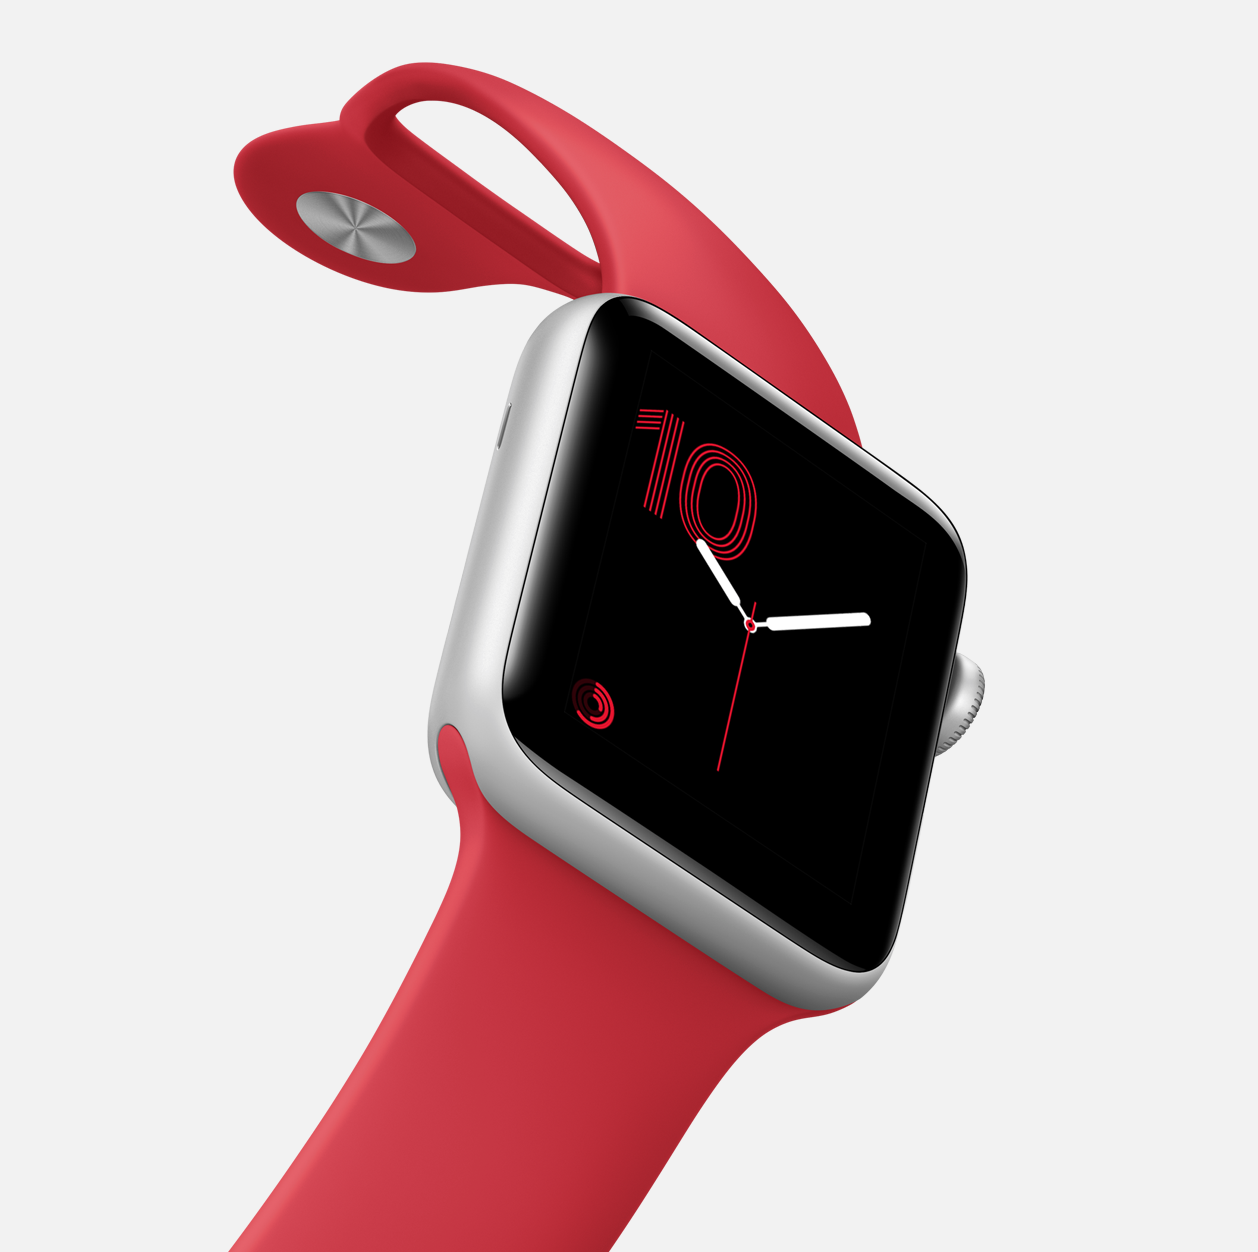 unicorn, booty, gift, guide, holiday, apple, watch